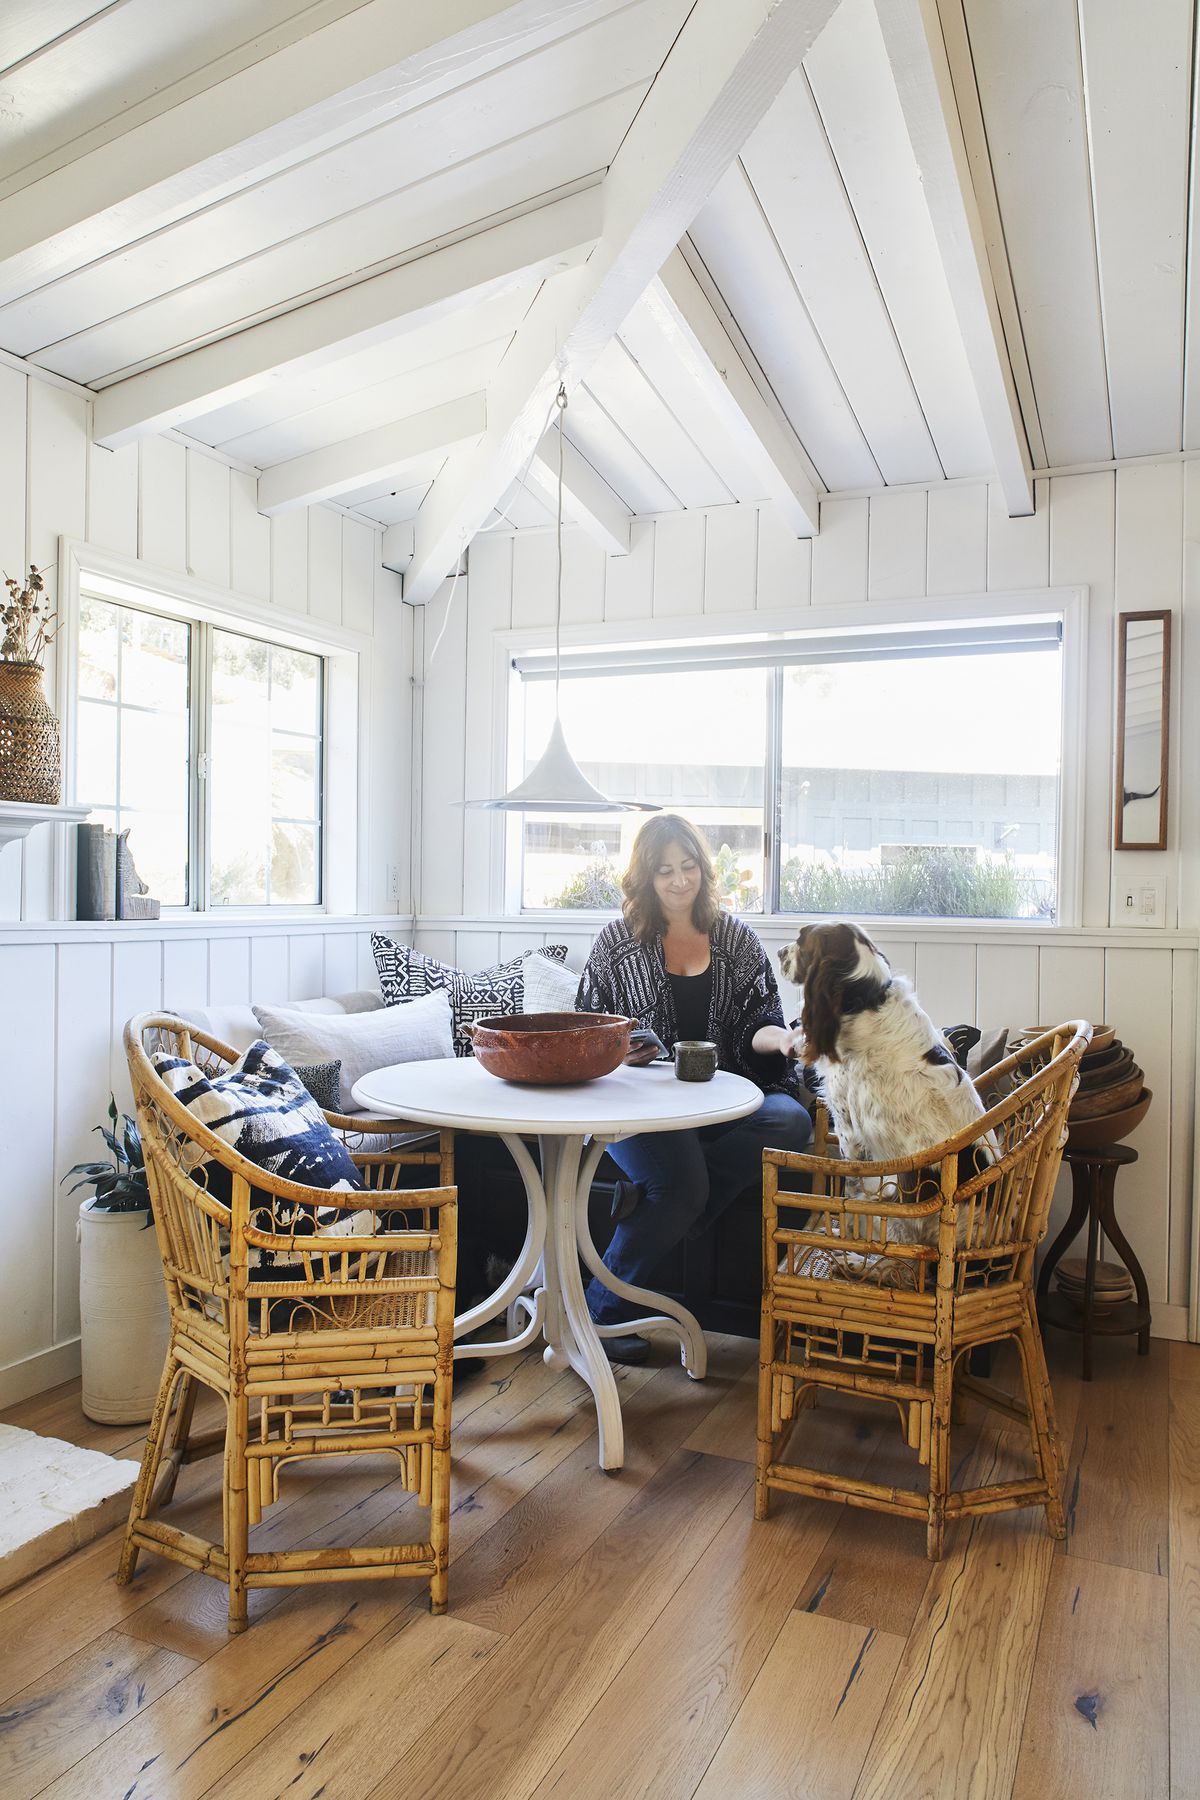 A dining nook has a banquette, wicker chairs, and a table. The paneled walls and ceiling are painted white. Maxcy sits at the table with her brown-and-white dog.